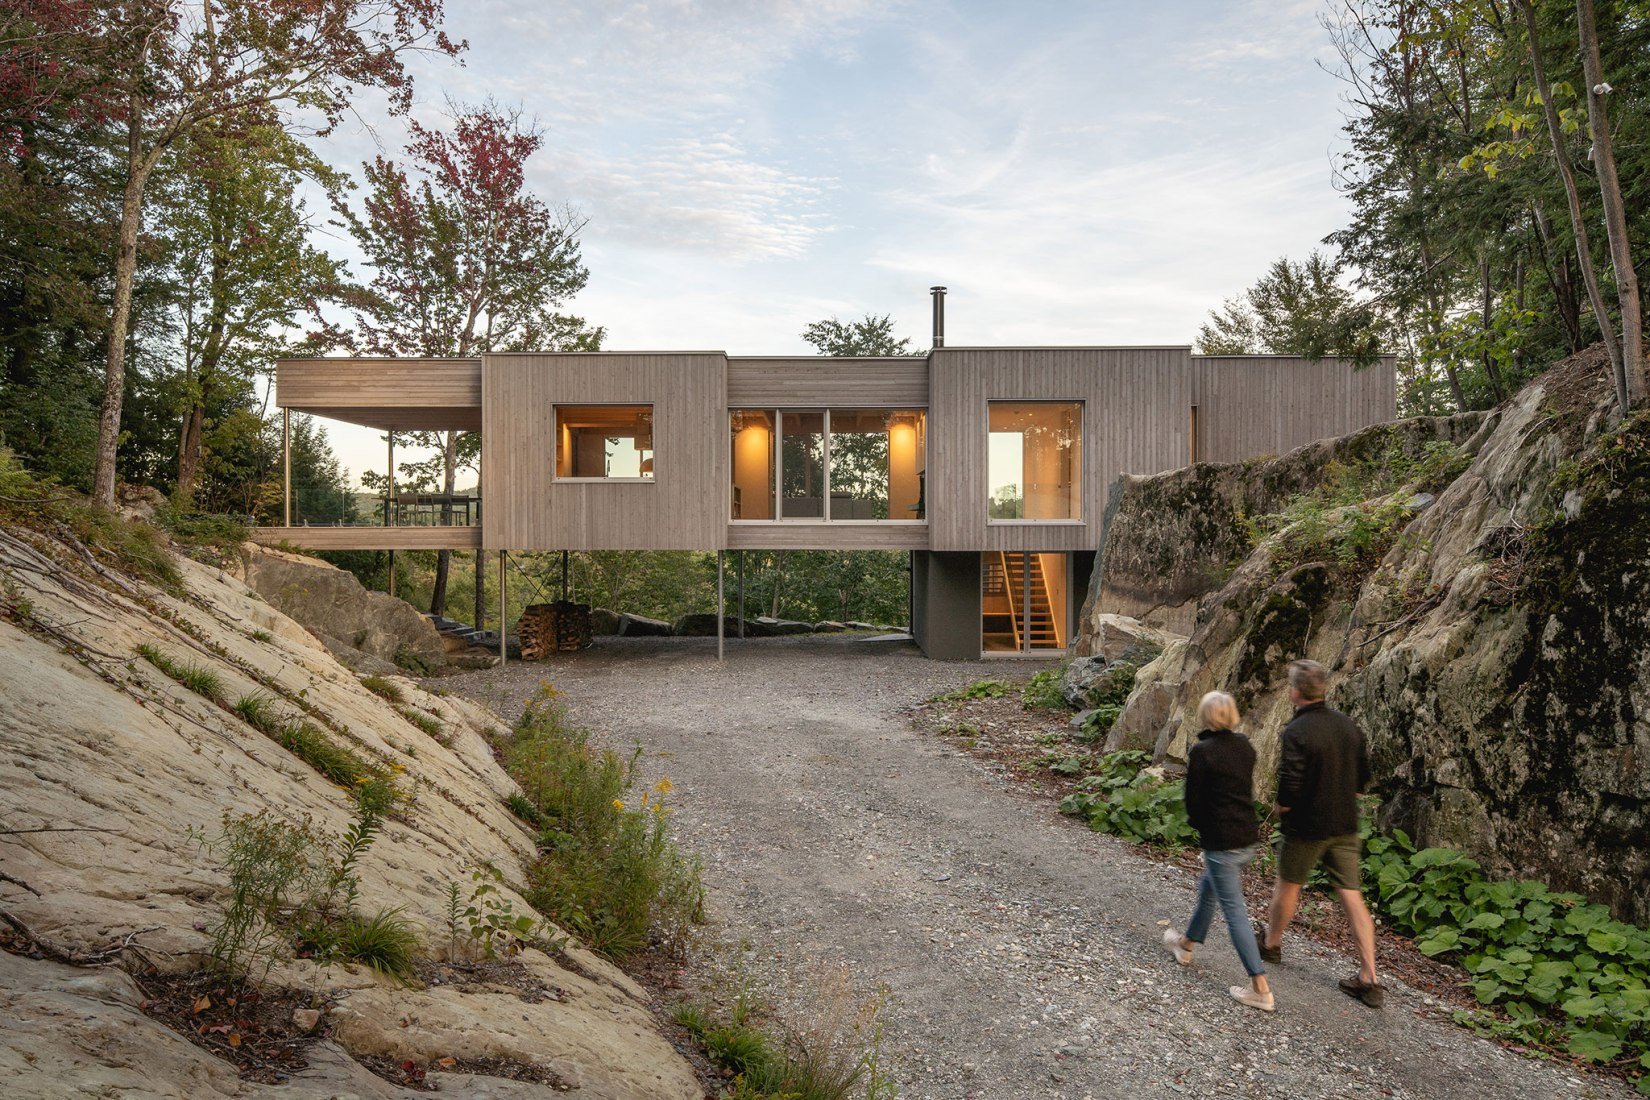 Forest House I by Natalie Dionne Architecture. Photograph by Raphaël Thibodeau